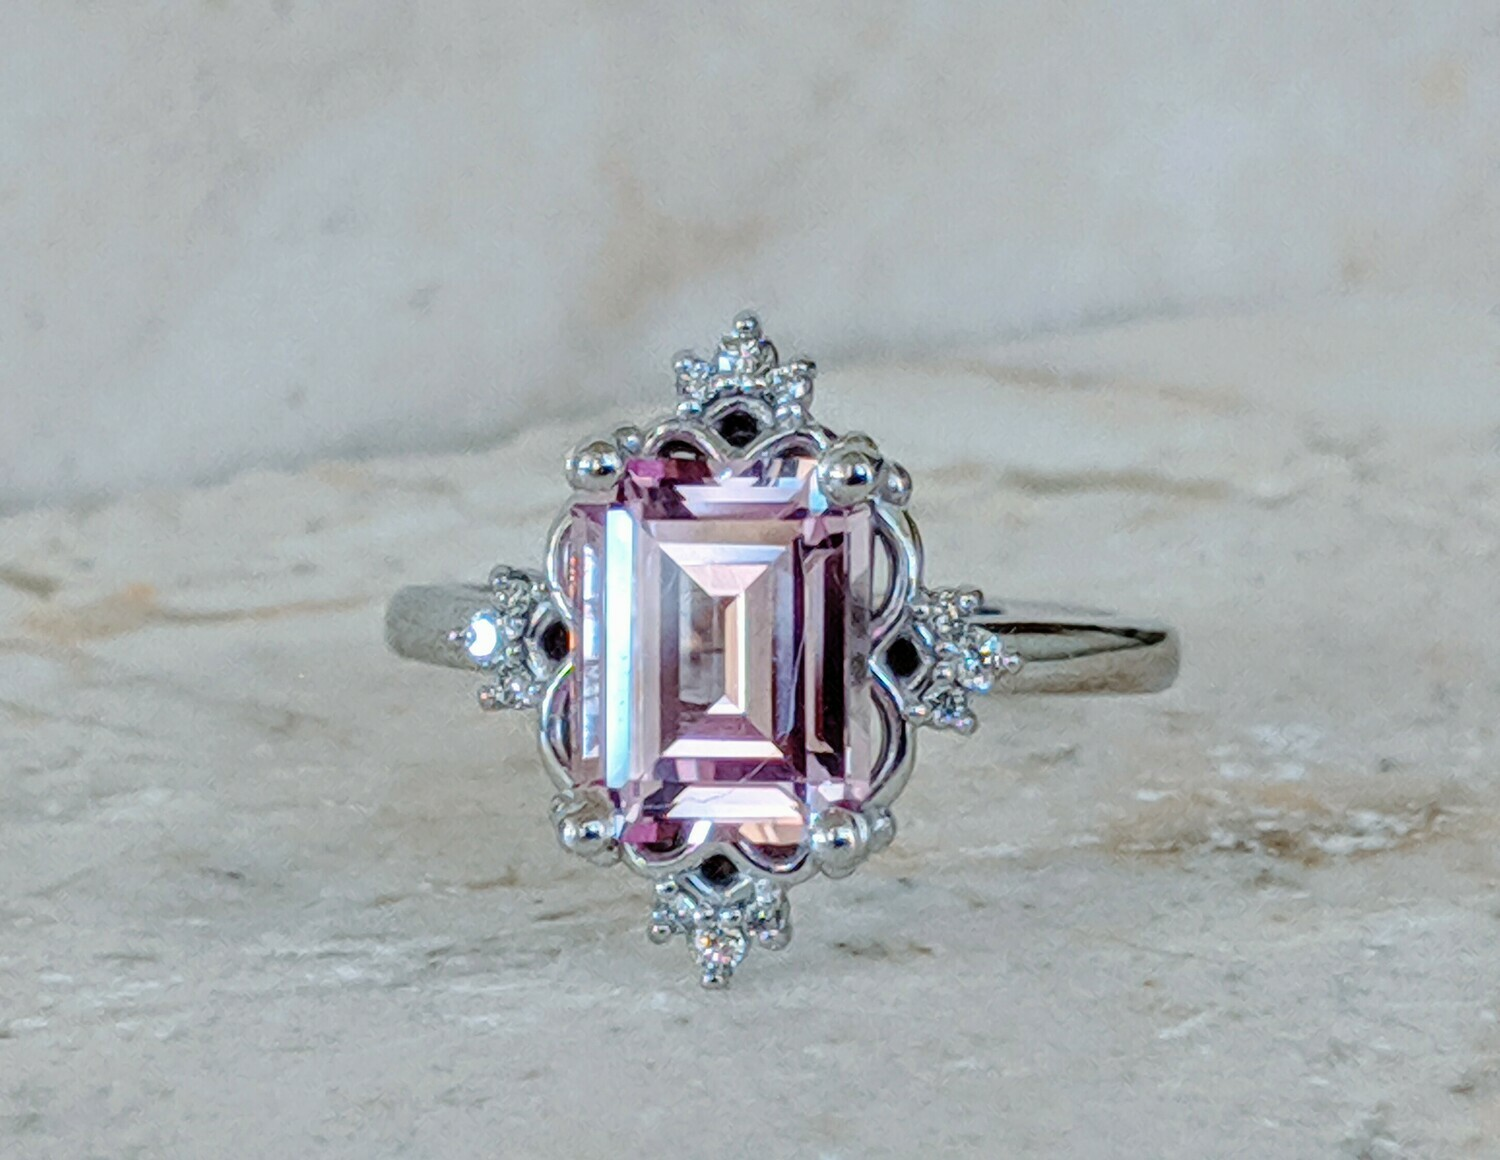 9x7 mm (2.5 ct) Lab Pink Sapphire with CVD diamonds in White Gold